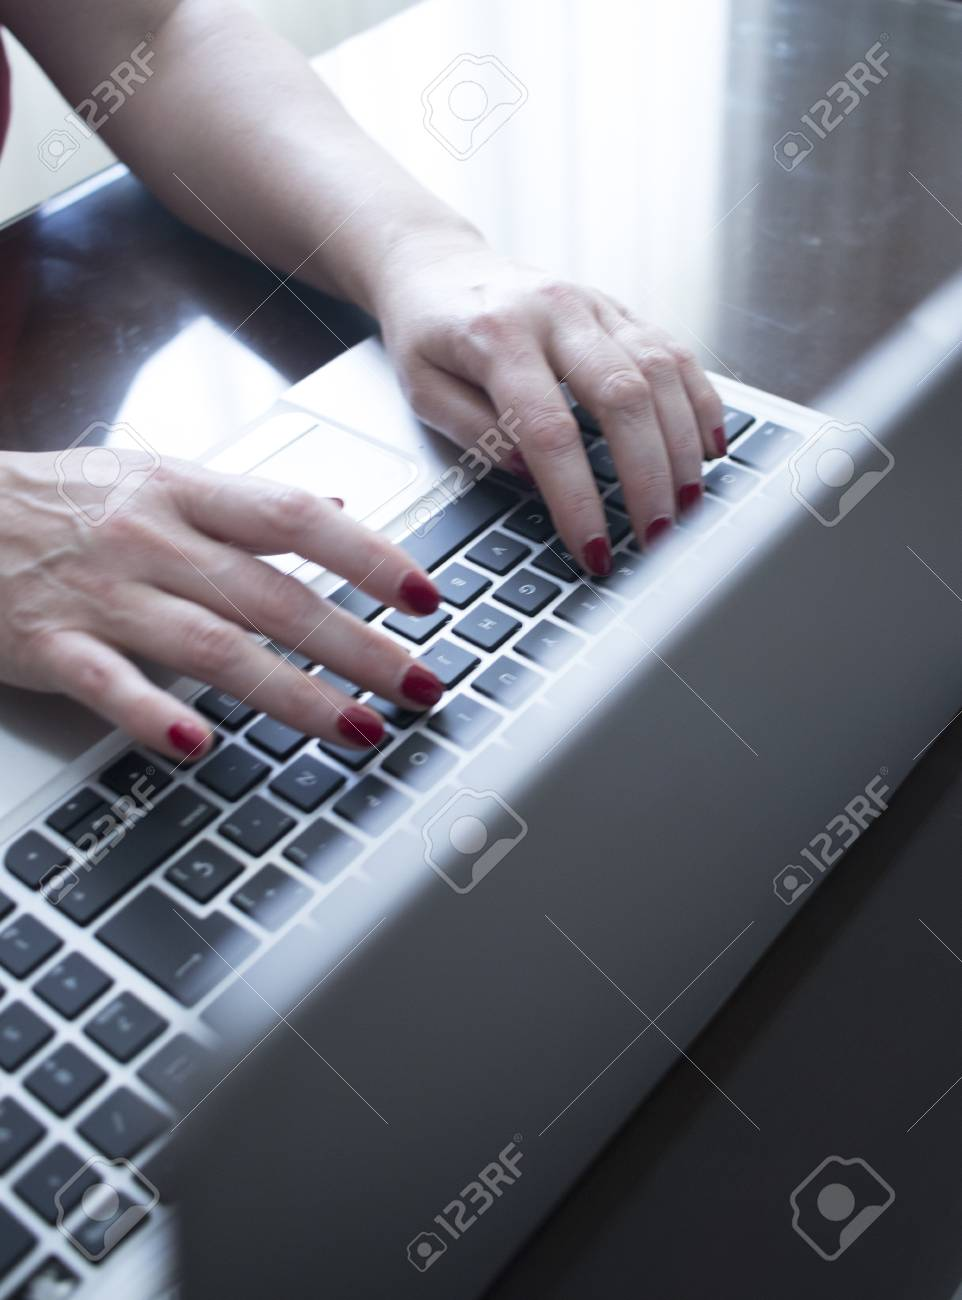 Secretary typist typing on laptop pc computer keyboard keys with hands with  red nail varnish.